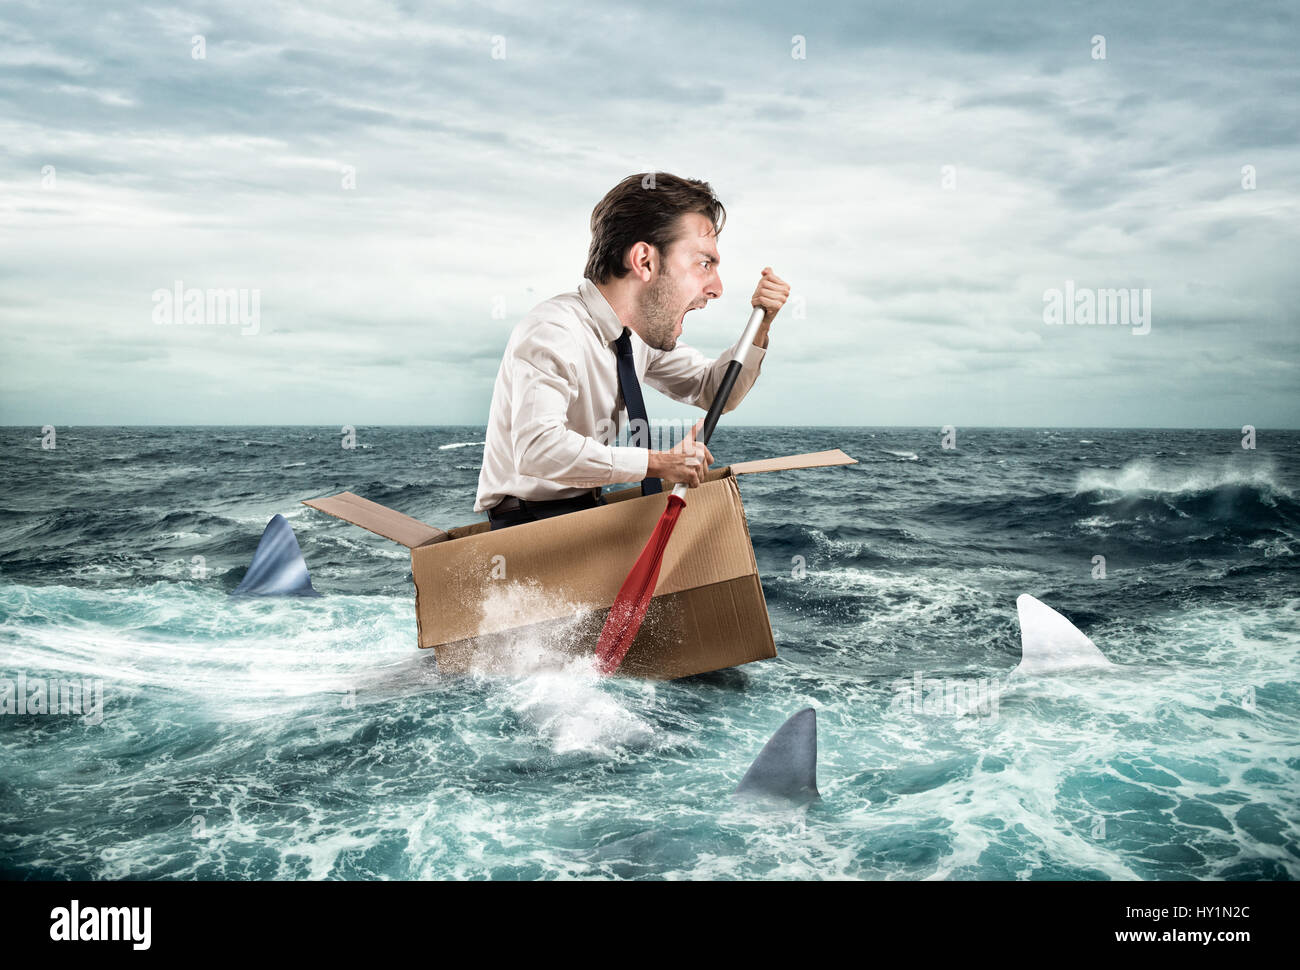 Escape from crisis. Funny face - Stock Image